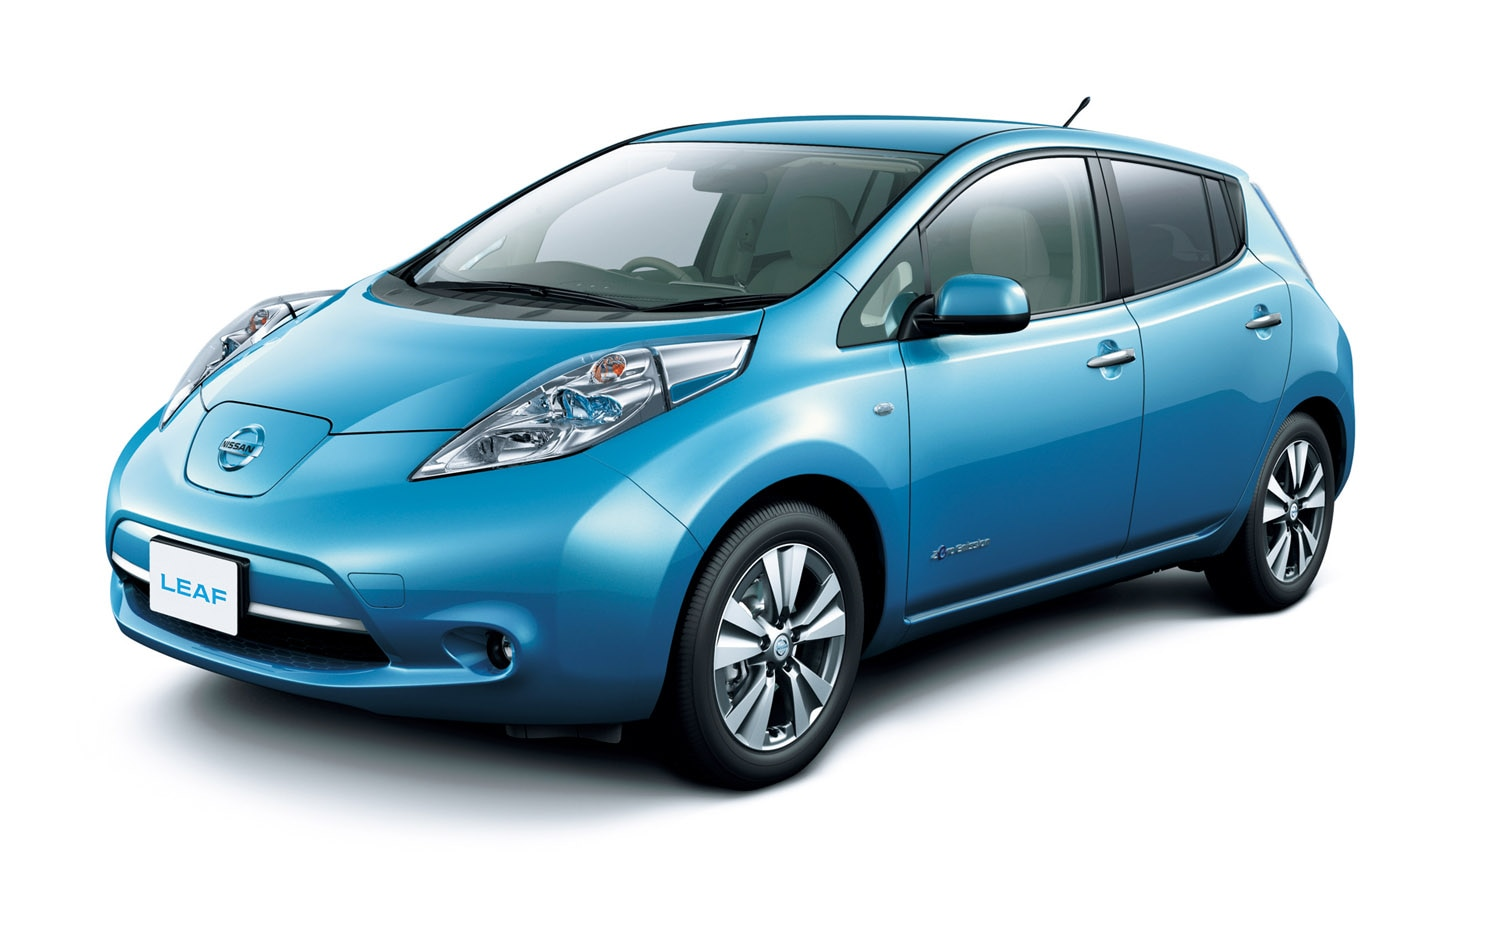 2013 Nissan Leaf Blue Front Three Quarter1